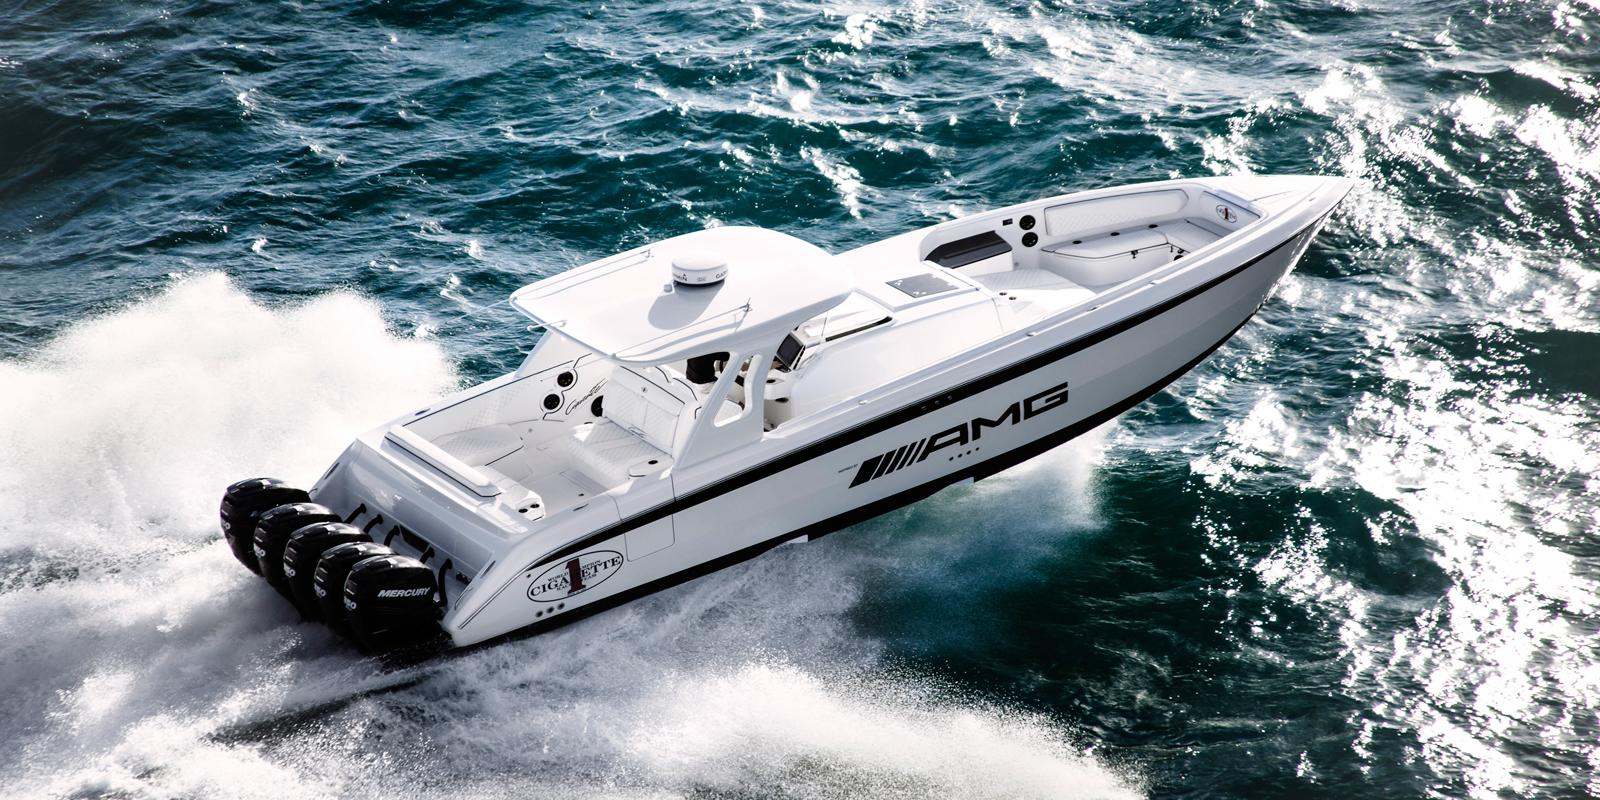 Cigarette Wallpaper Hd Amg 42 Huntress Cigarette Boat Inspired By G63 Amg